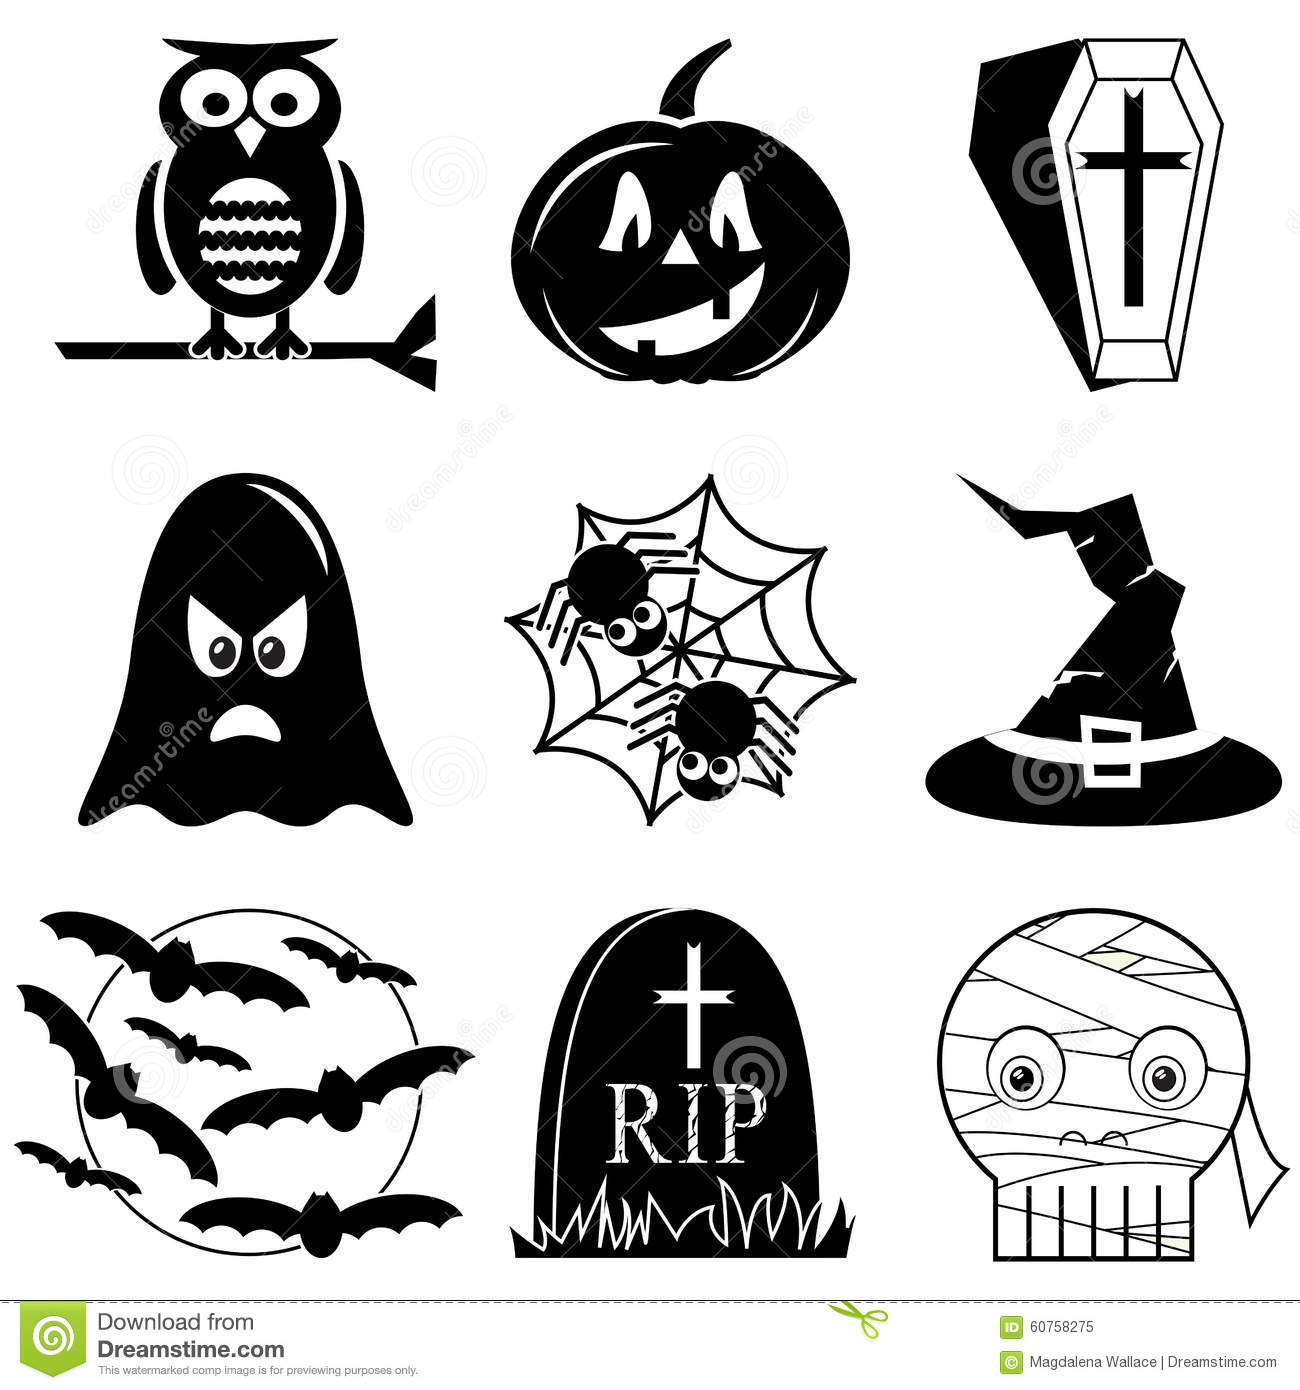 Stock Illustration Halloween Theme Drawing Eps Vector Illustration Image44912188 as well  further Stock Illustration Halloween Icons Set Black White Including Owl Pumpkin Coffin Cross Ghost Spider Spider Web Witch Hat Buc Image60758275 likewise White Scared Ghost Vector 16095060 as well Stock Illustration Softball Batter Black White Illustration Hitter Swinging Image58060142. on bat plans